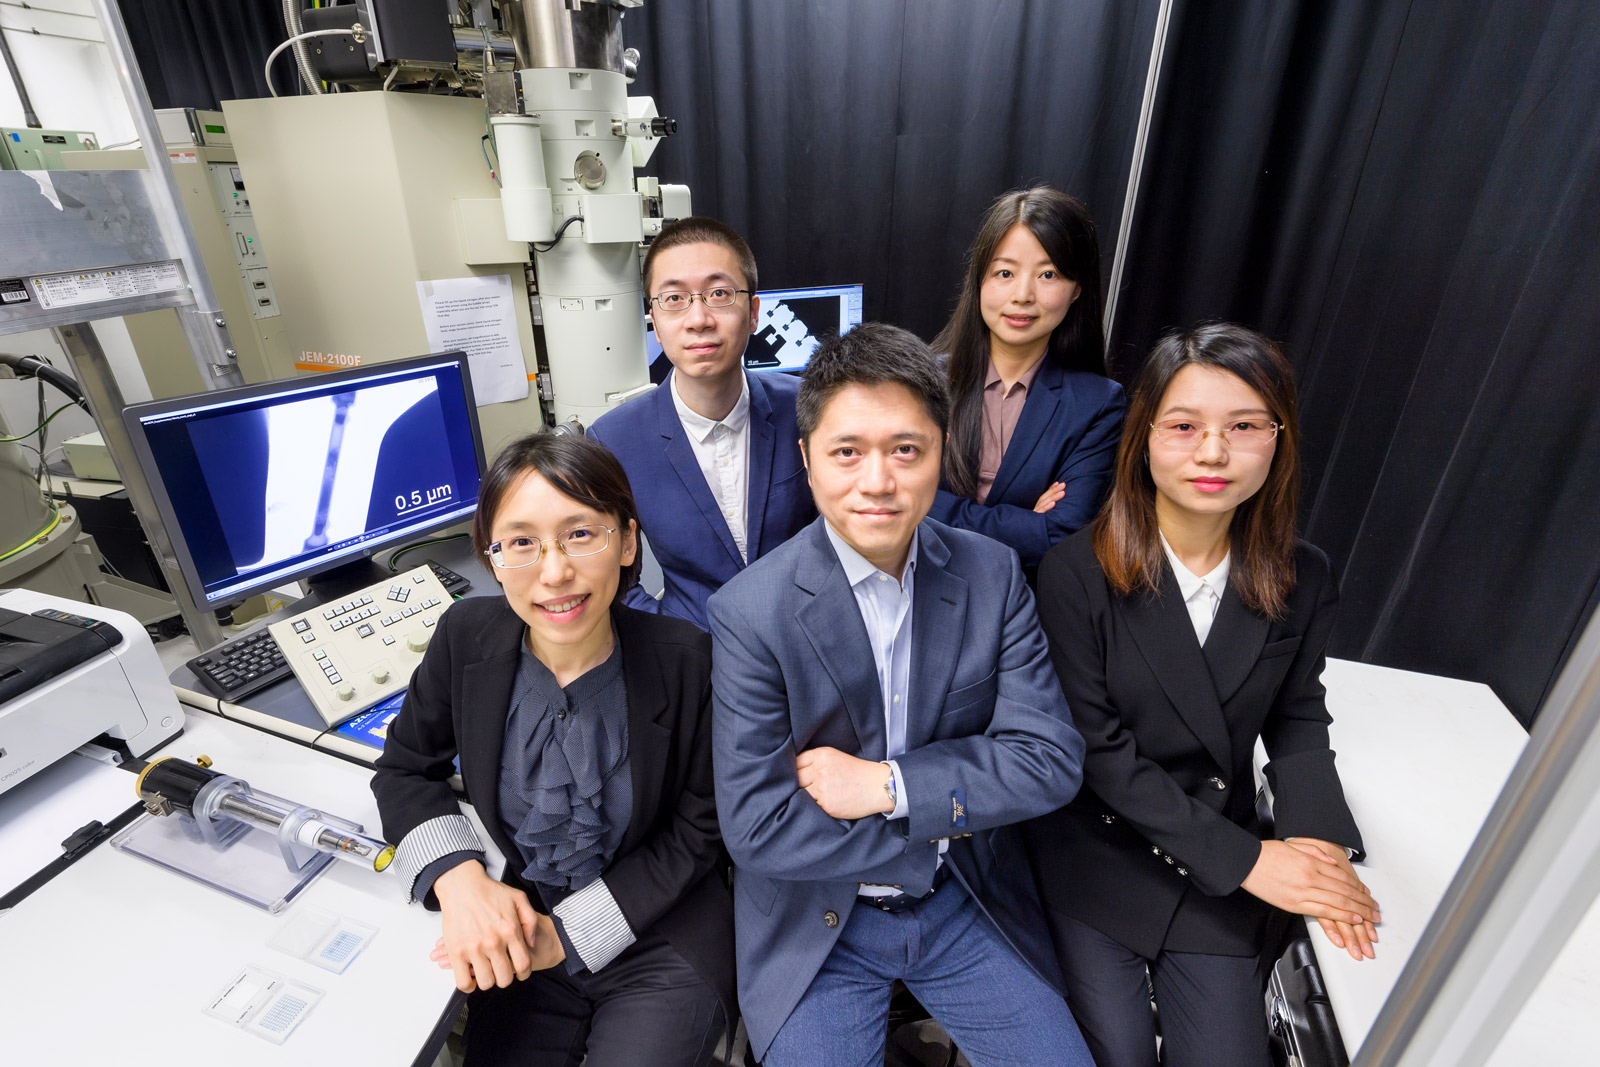 Dr Lu Yang (centre, front) and his research team: Dr Alice Hu (left, front); Dang Chaoqun (right, front); Lin Weitong (left, back) and Dr Fan Rong (right, back).